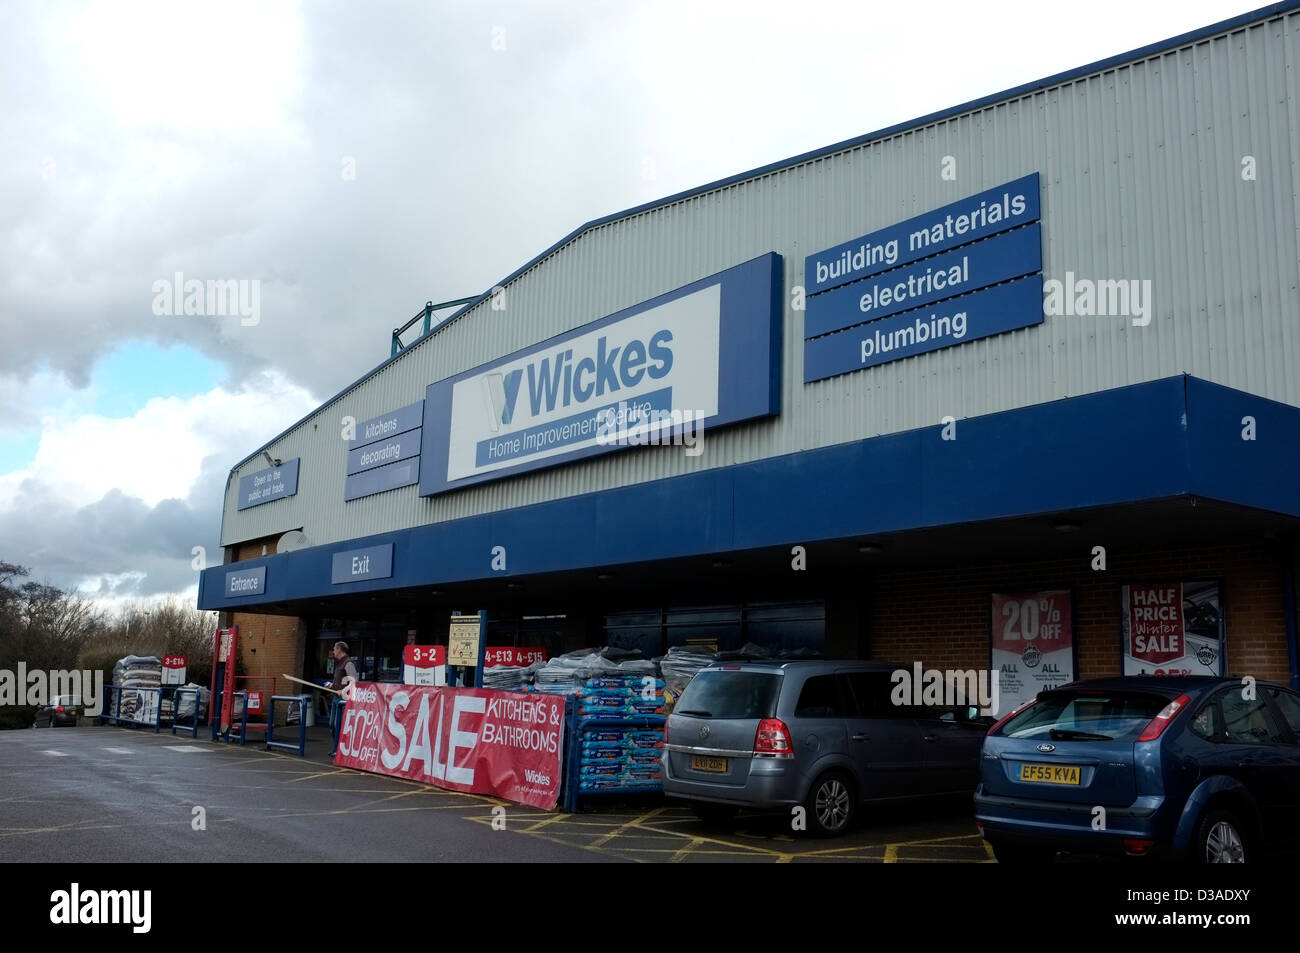 wickes diy store sevenoaks kent uk 2013 Stock Photo: 53705539 - Alamy